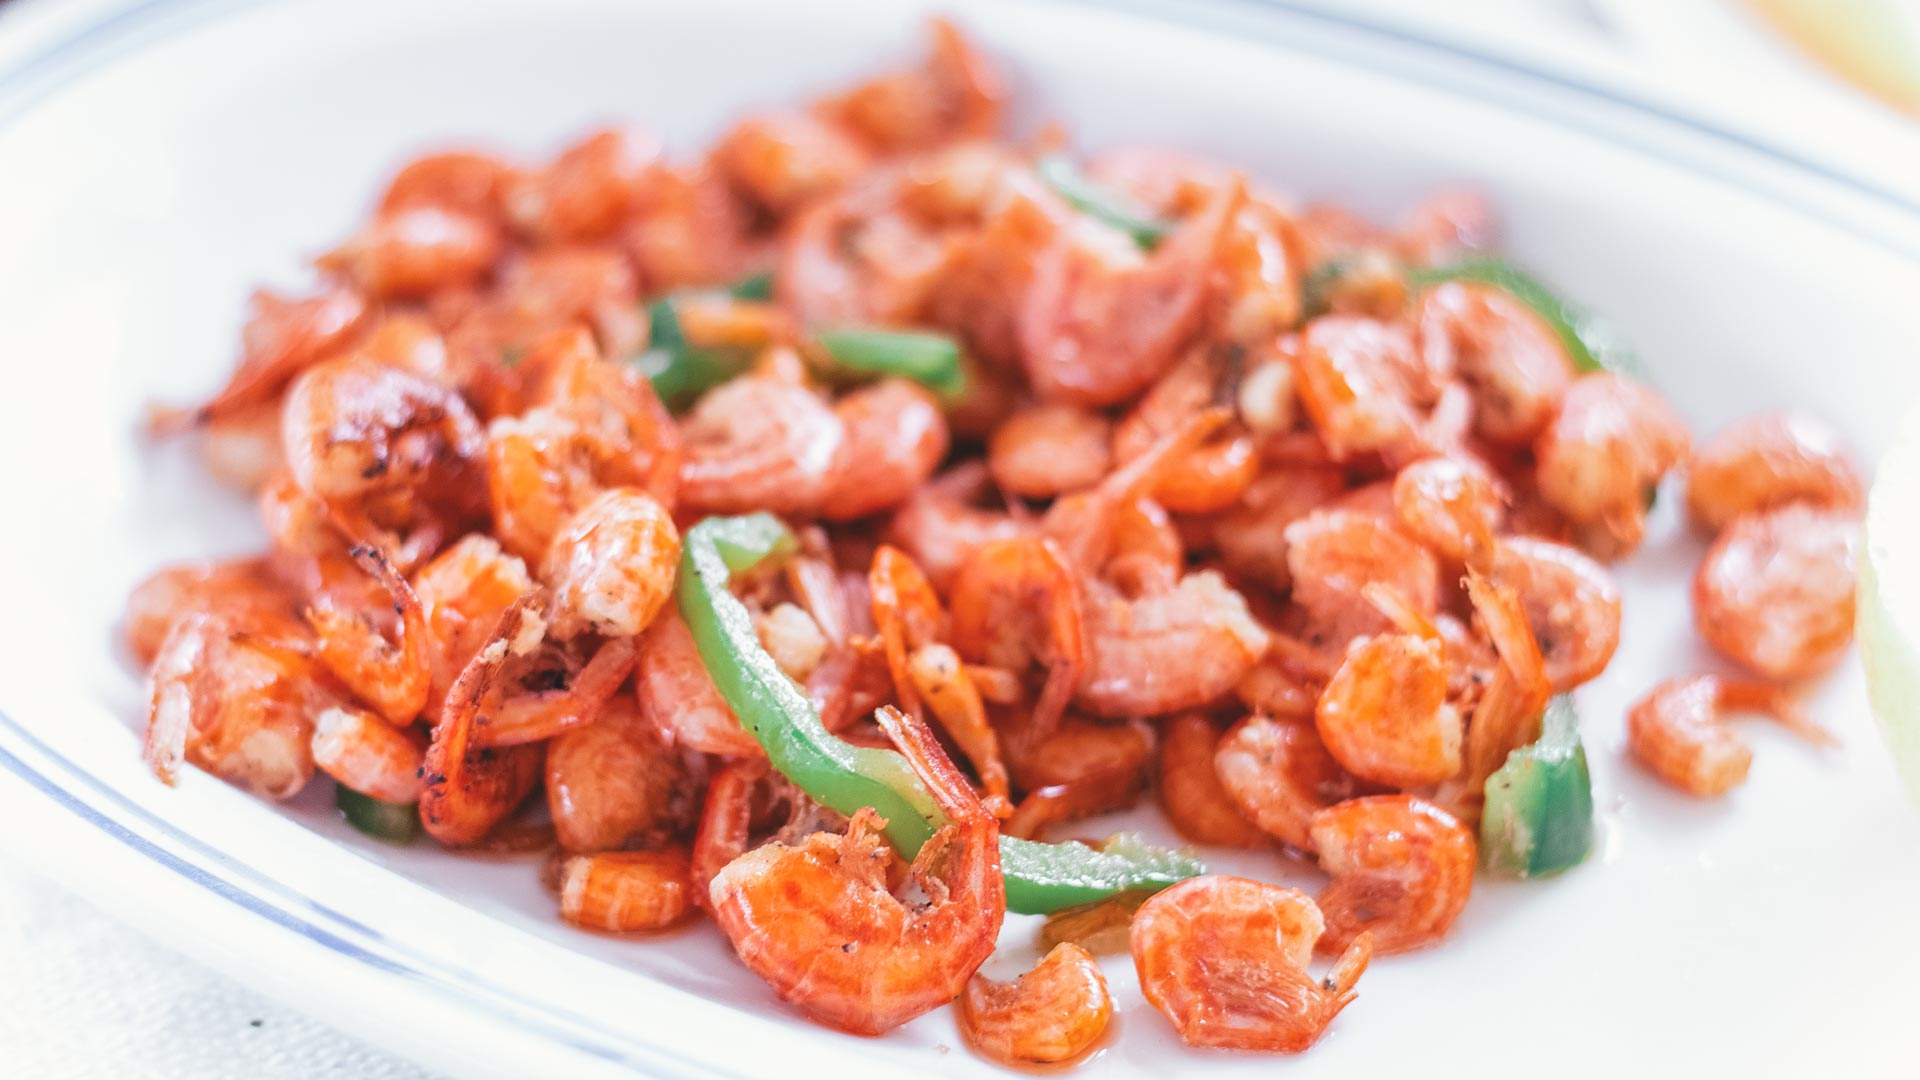 Symi shrimps, the most famous and traditional dish in Symi